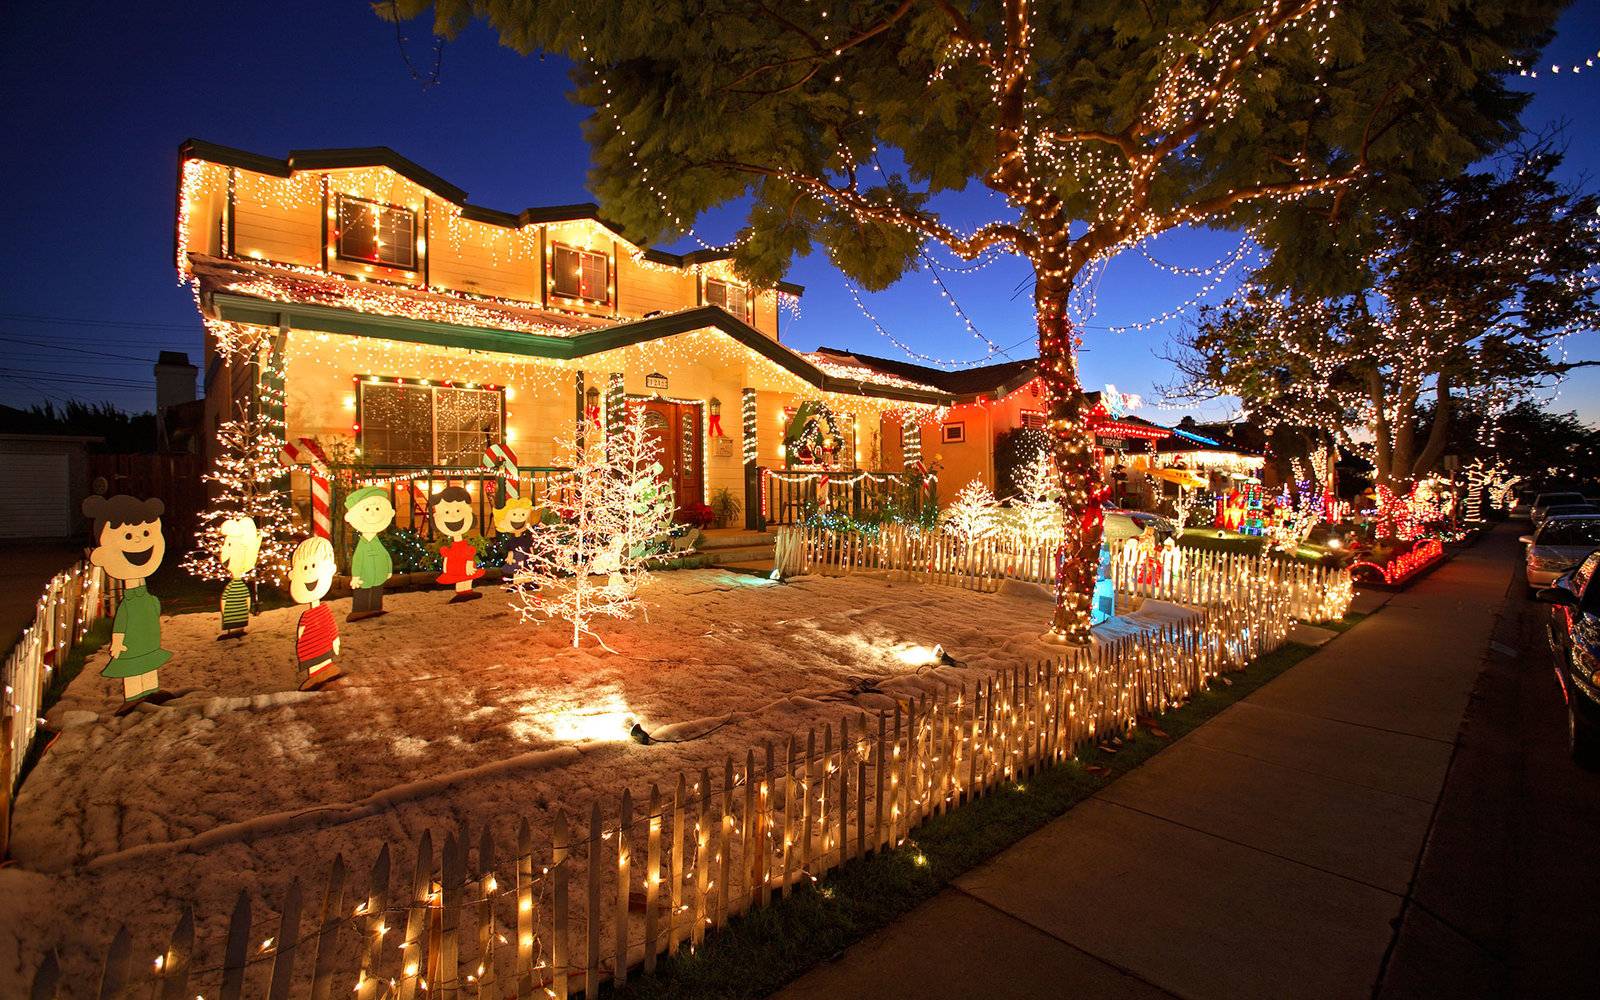 ATF28W Candy Cane Lane El Segundo Los Angeles California & The Best Christmas Light Displays in Every State | Travel + Leisure